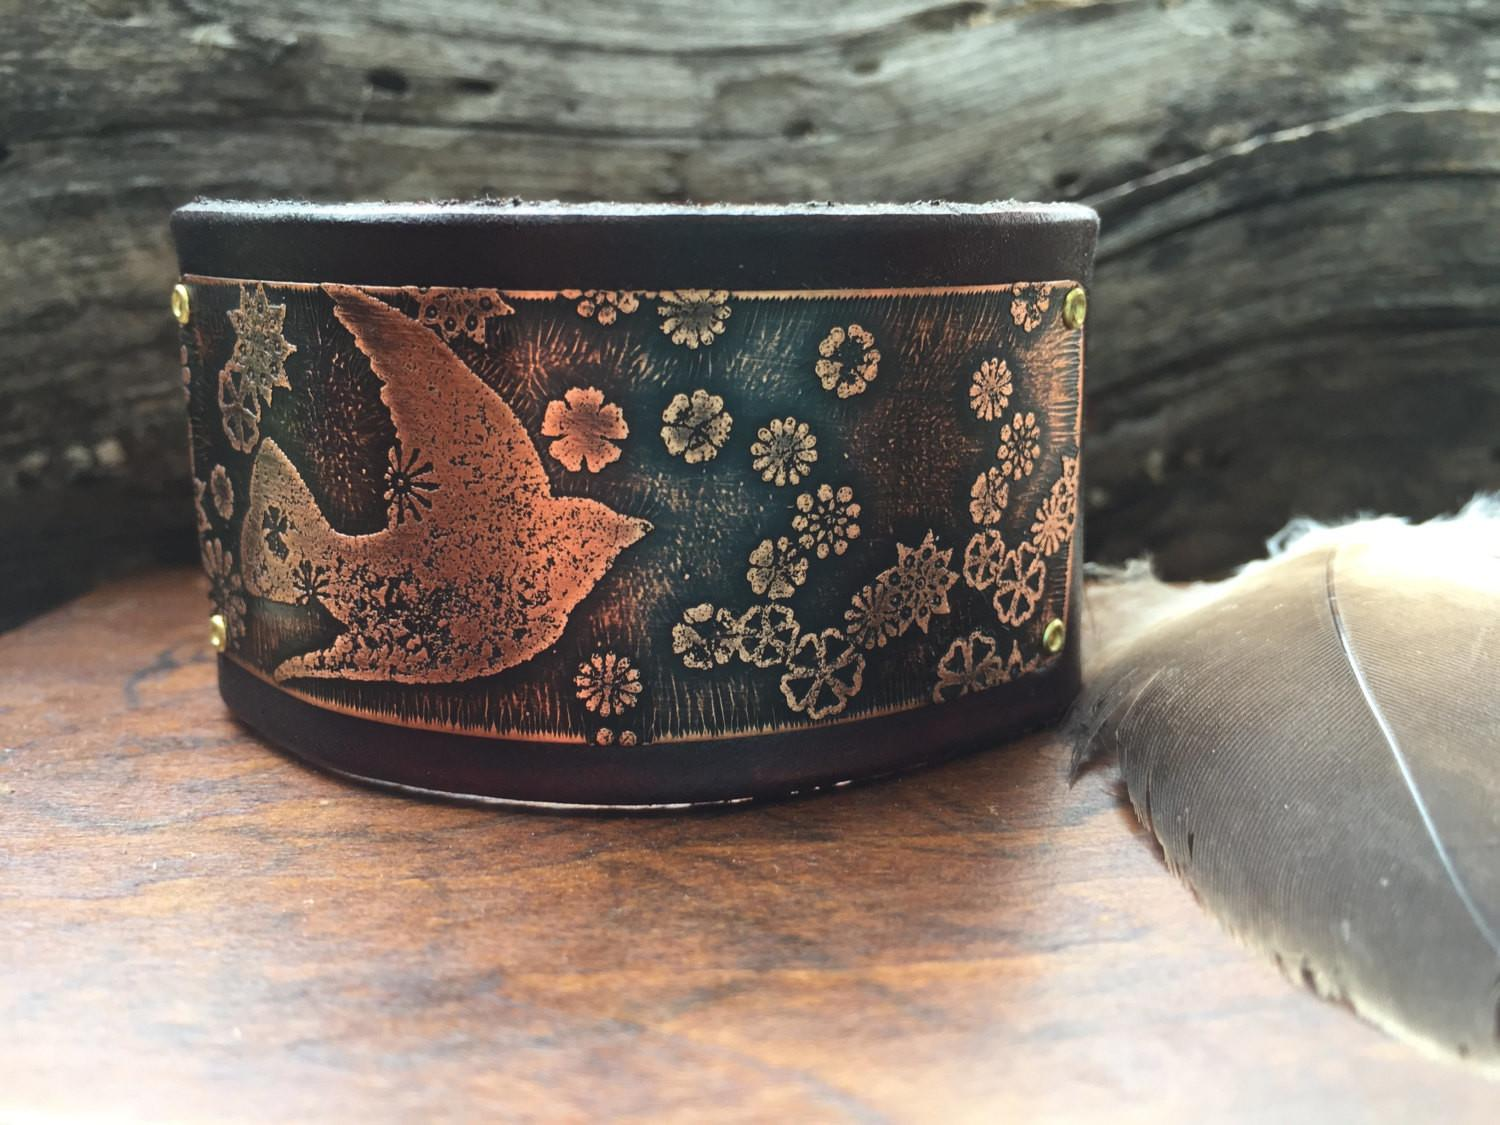 Bracelet Etched Copper Leather Cuff Bird Thedirtroaddaisy